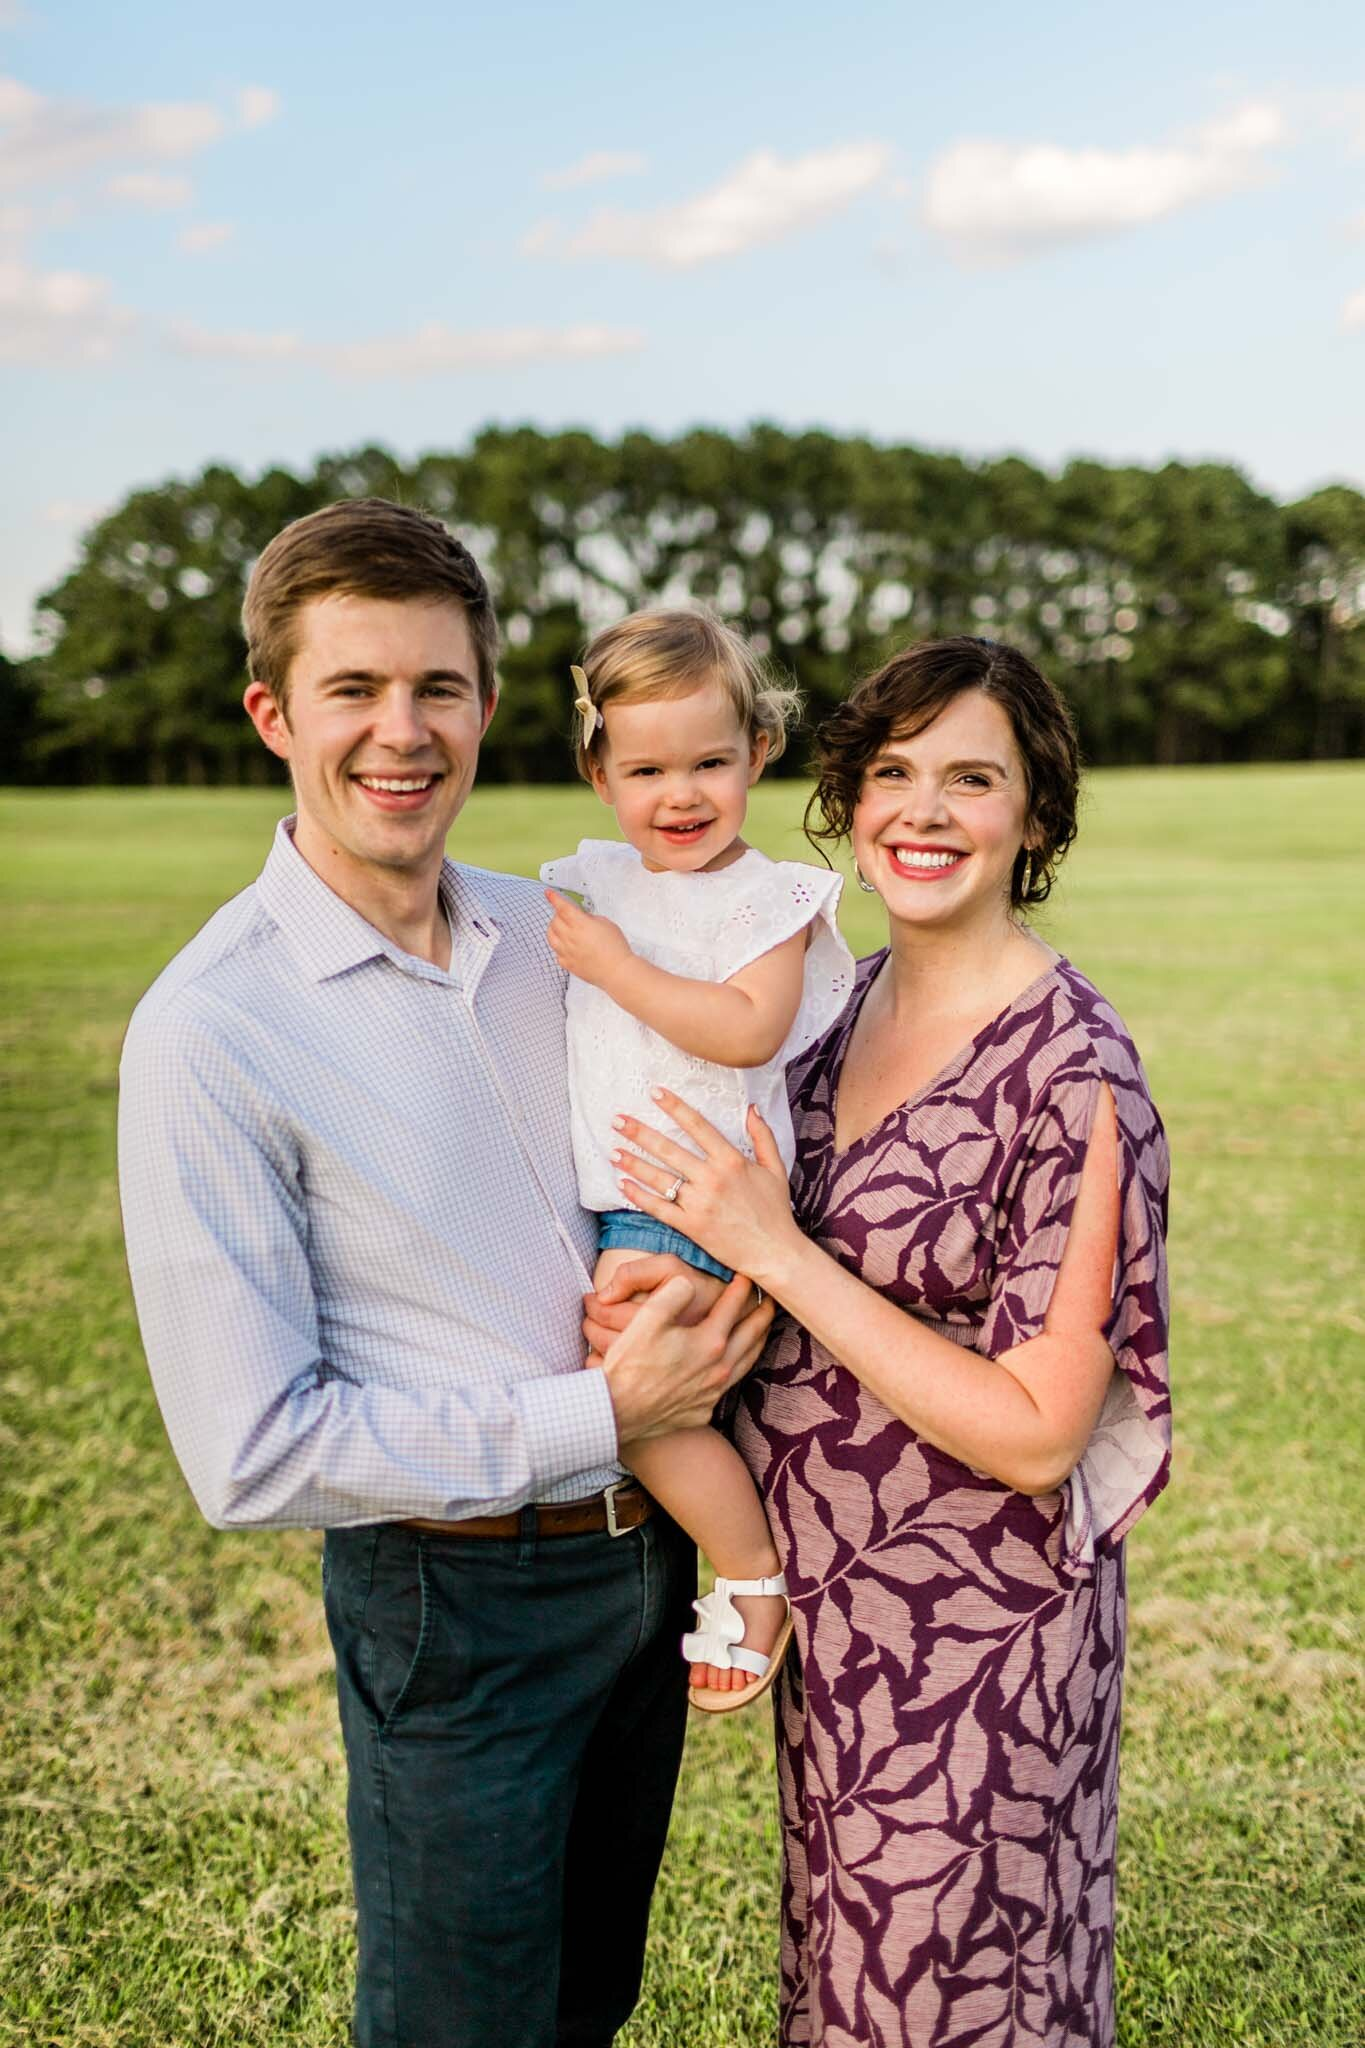 Sunset outdoor family portrait | Raleigh Family Photographer | By G. Lin Photography